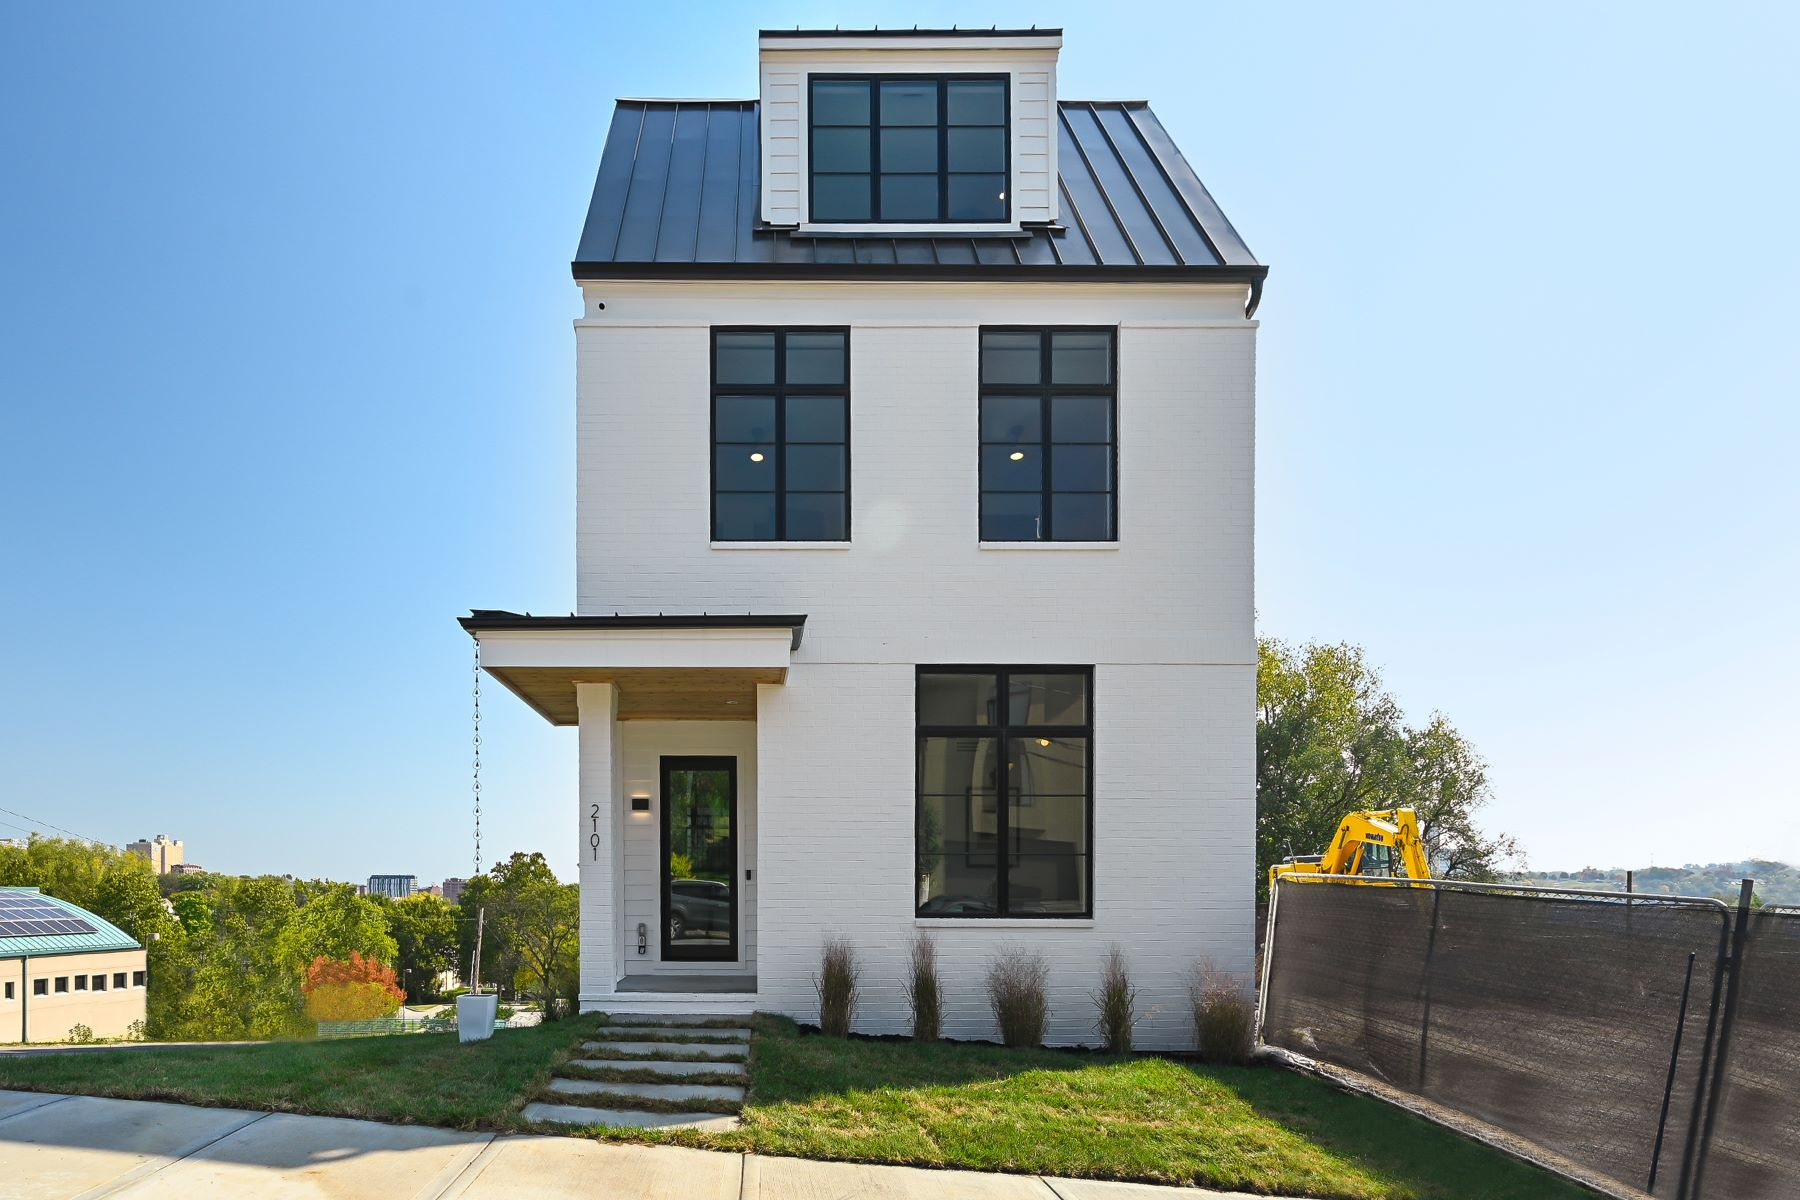 Single Family Homes for Sale at Historical Modern Row Home 2101 Belleview Avenue, Kansas City, Missouri 64108 United States